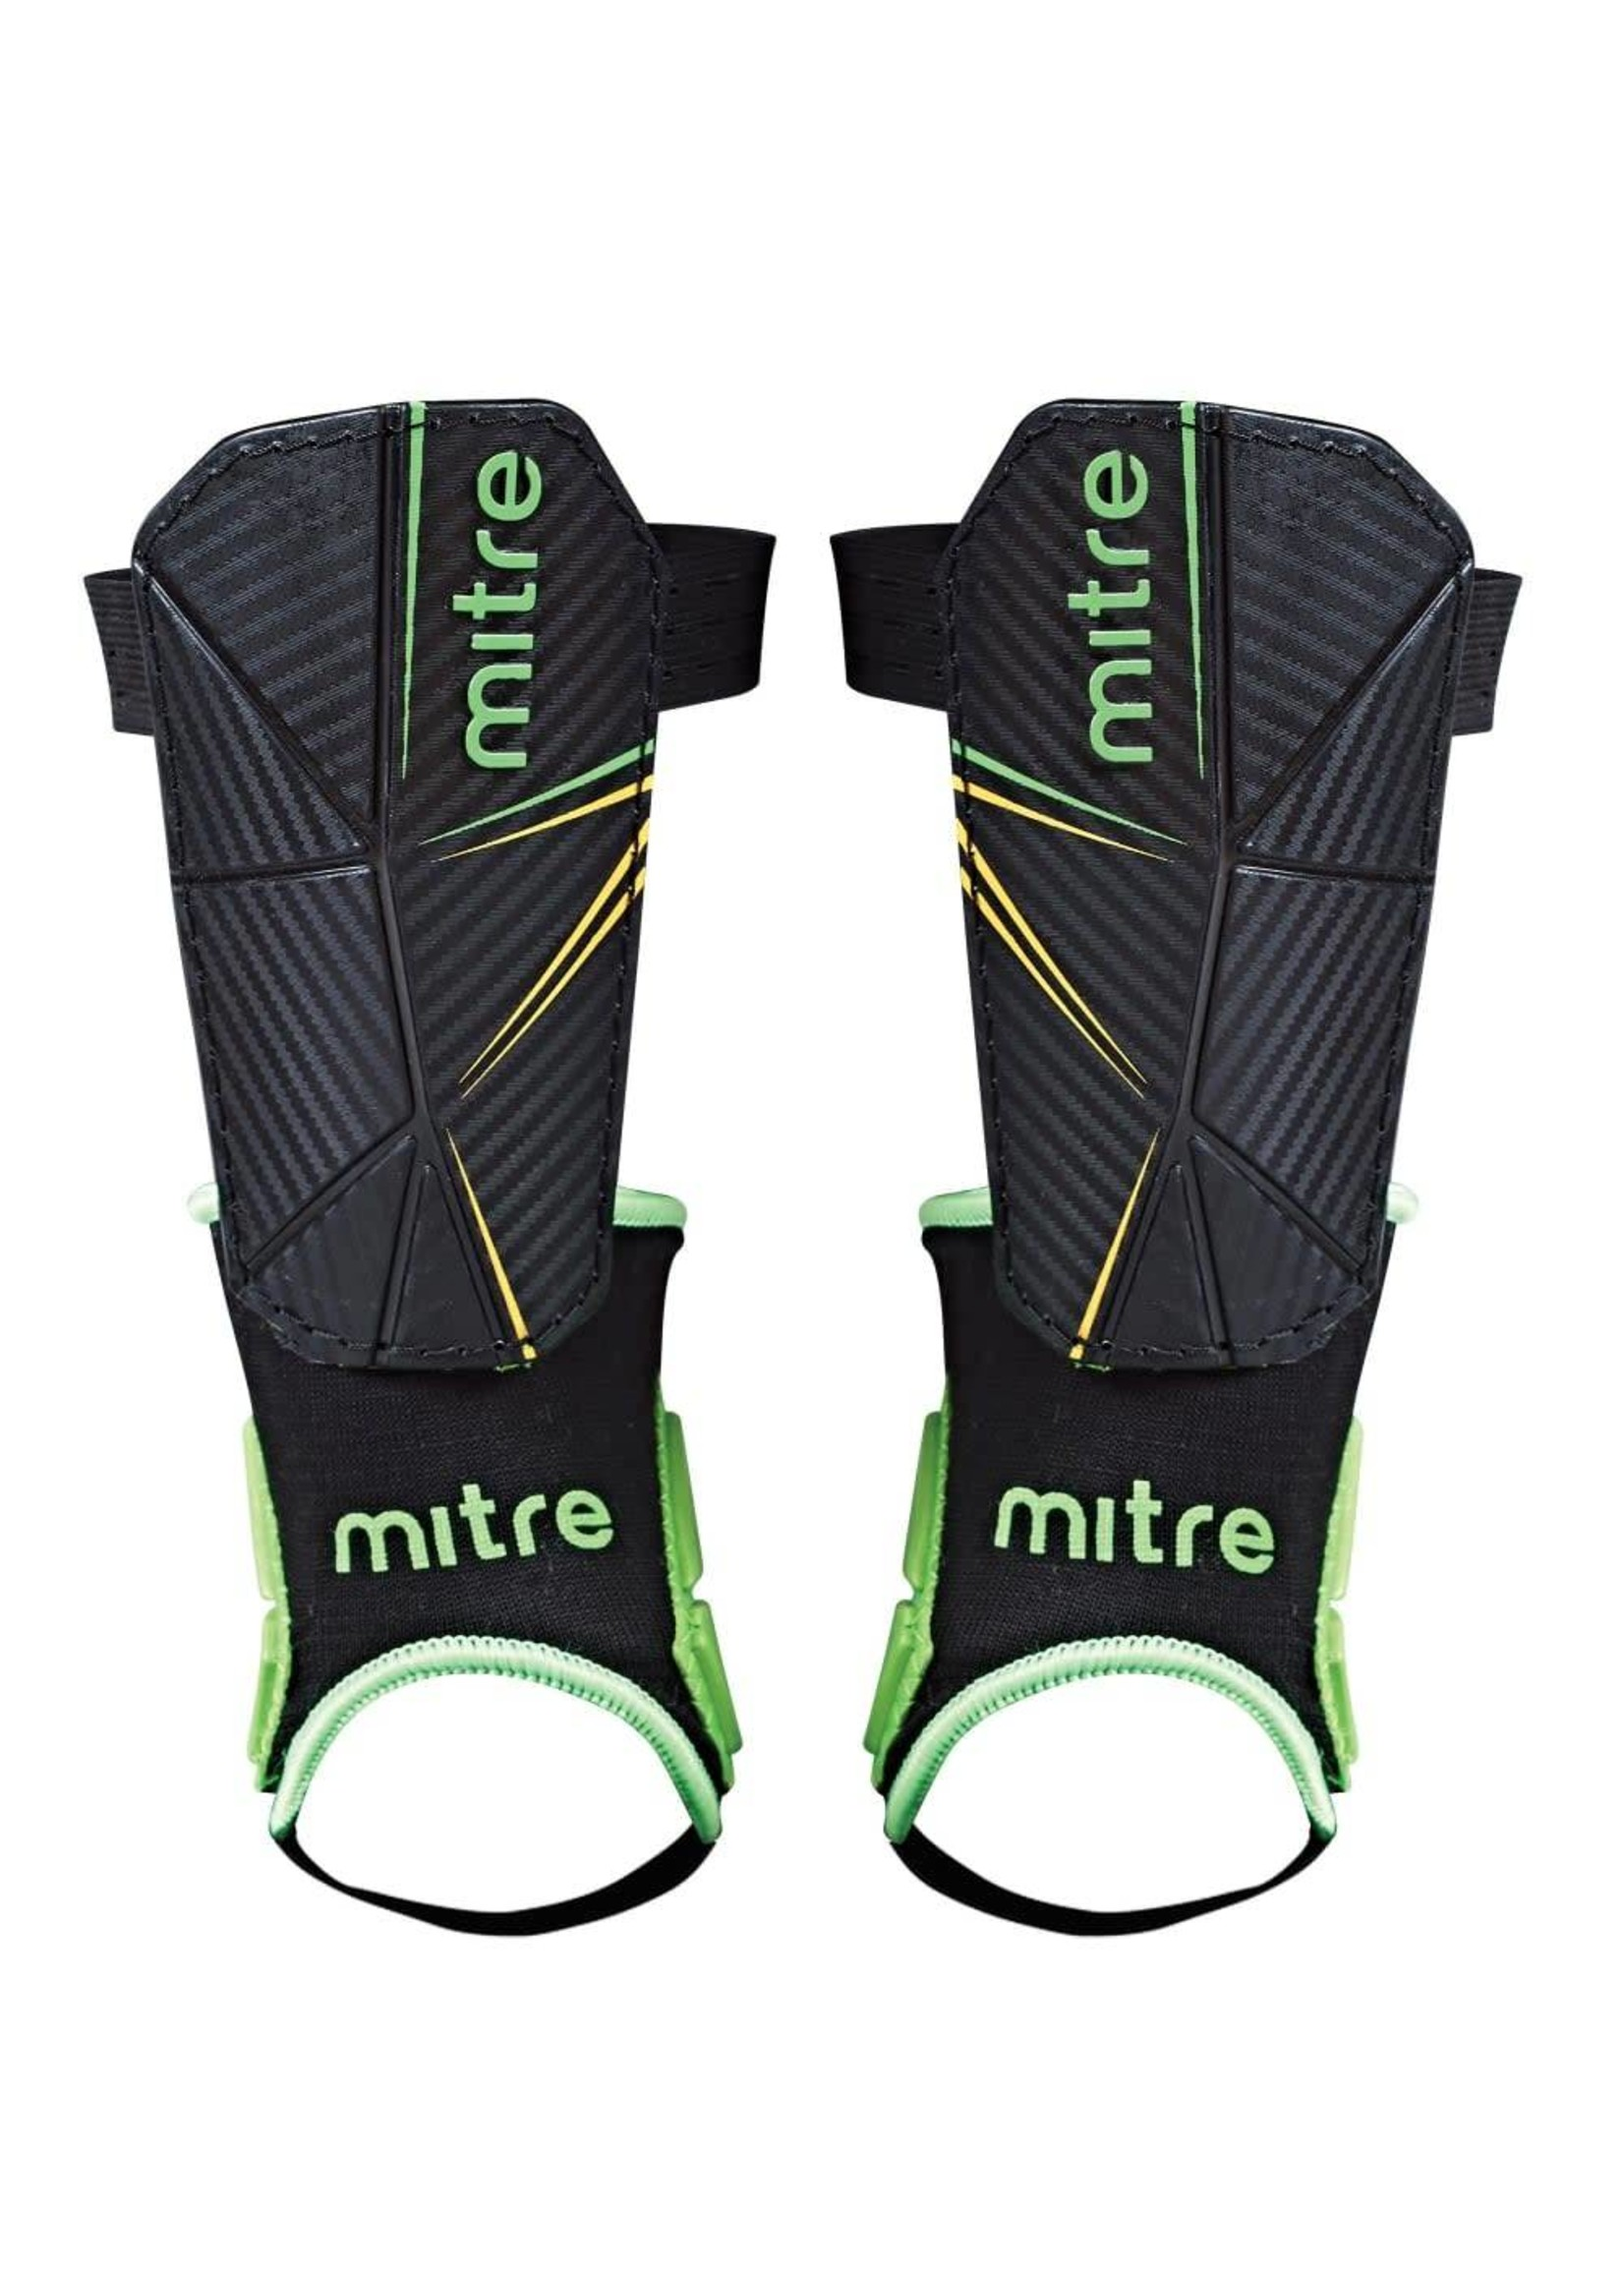 mitre Mitre Delta Ankle Protect Shinguards, Black/Green/Yellow